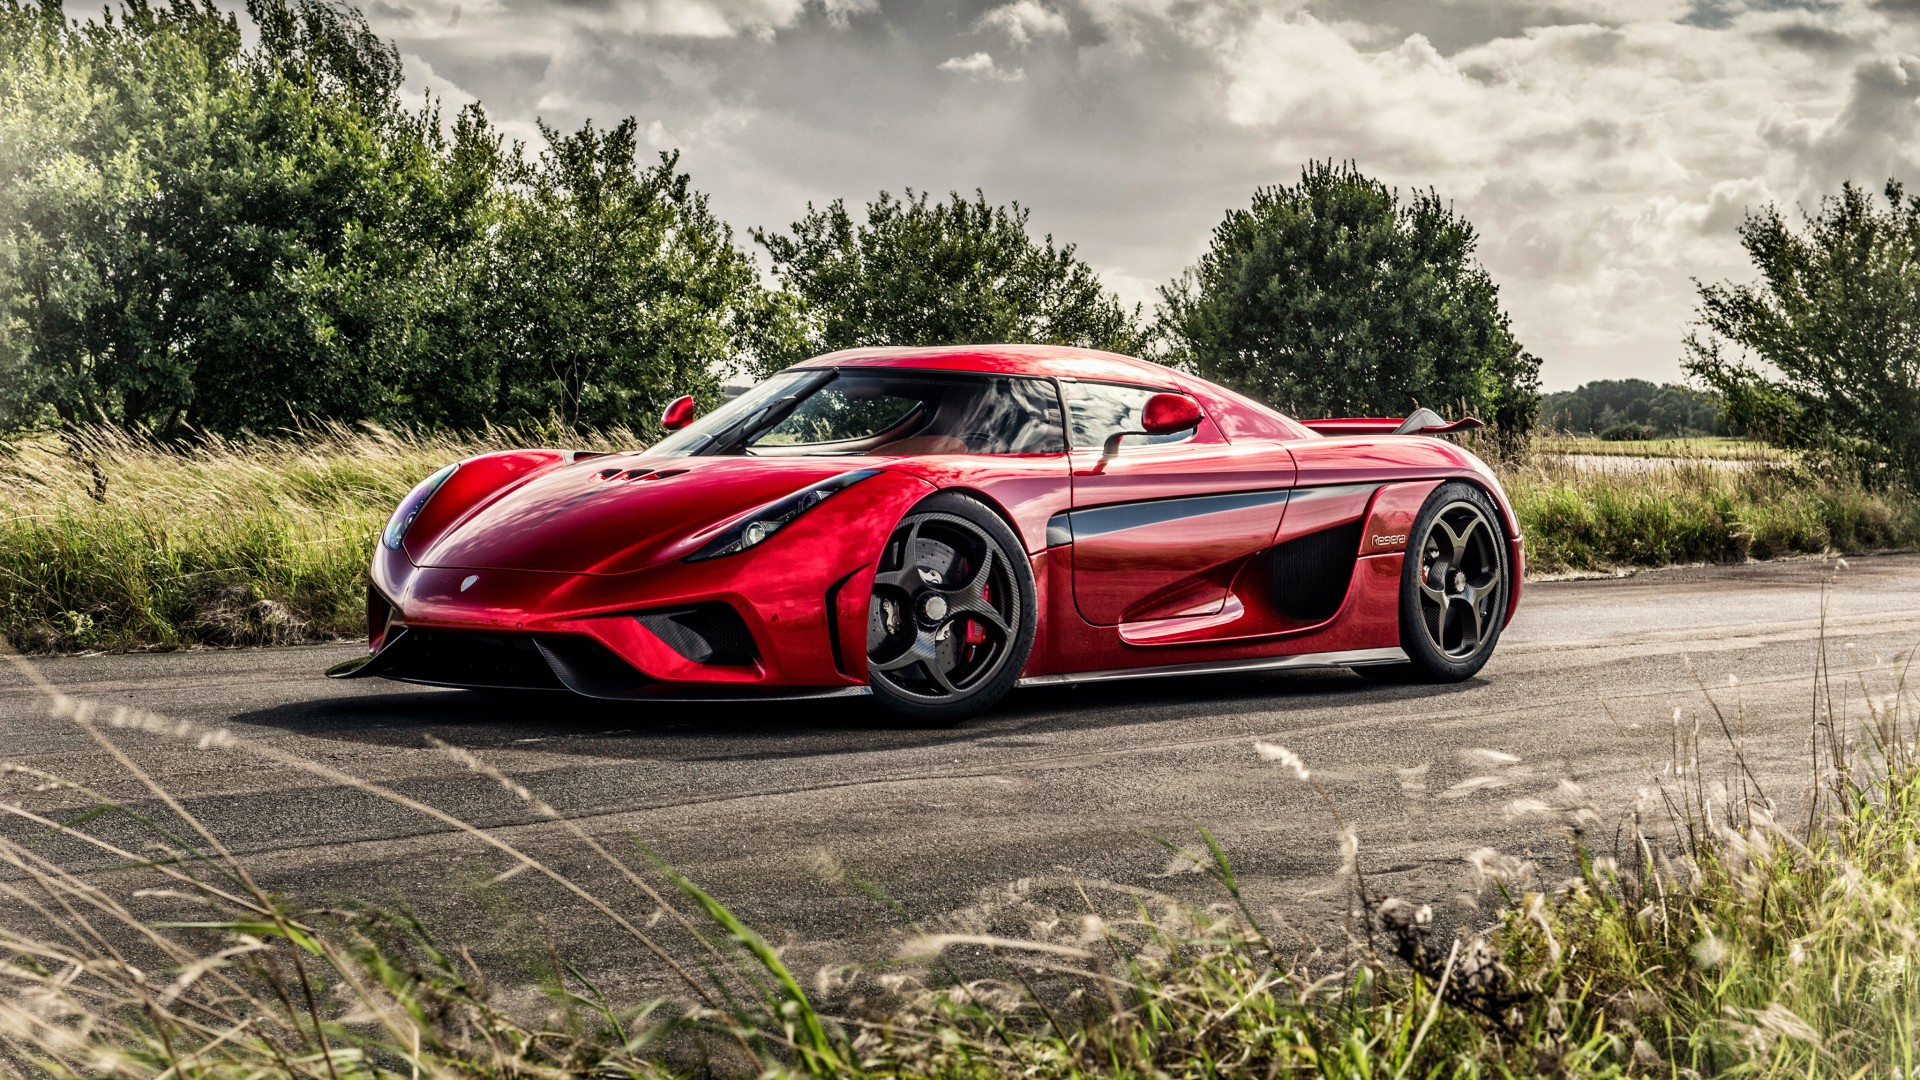 2017 Koenigsegg Regera 4K Wallpaper | HD Car Wallpapers | ID #8325